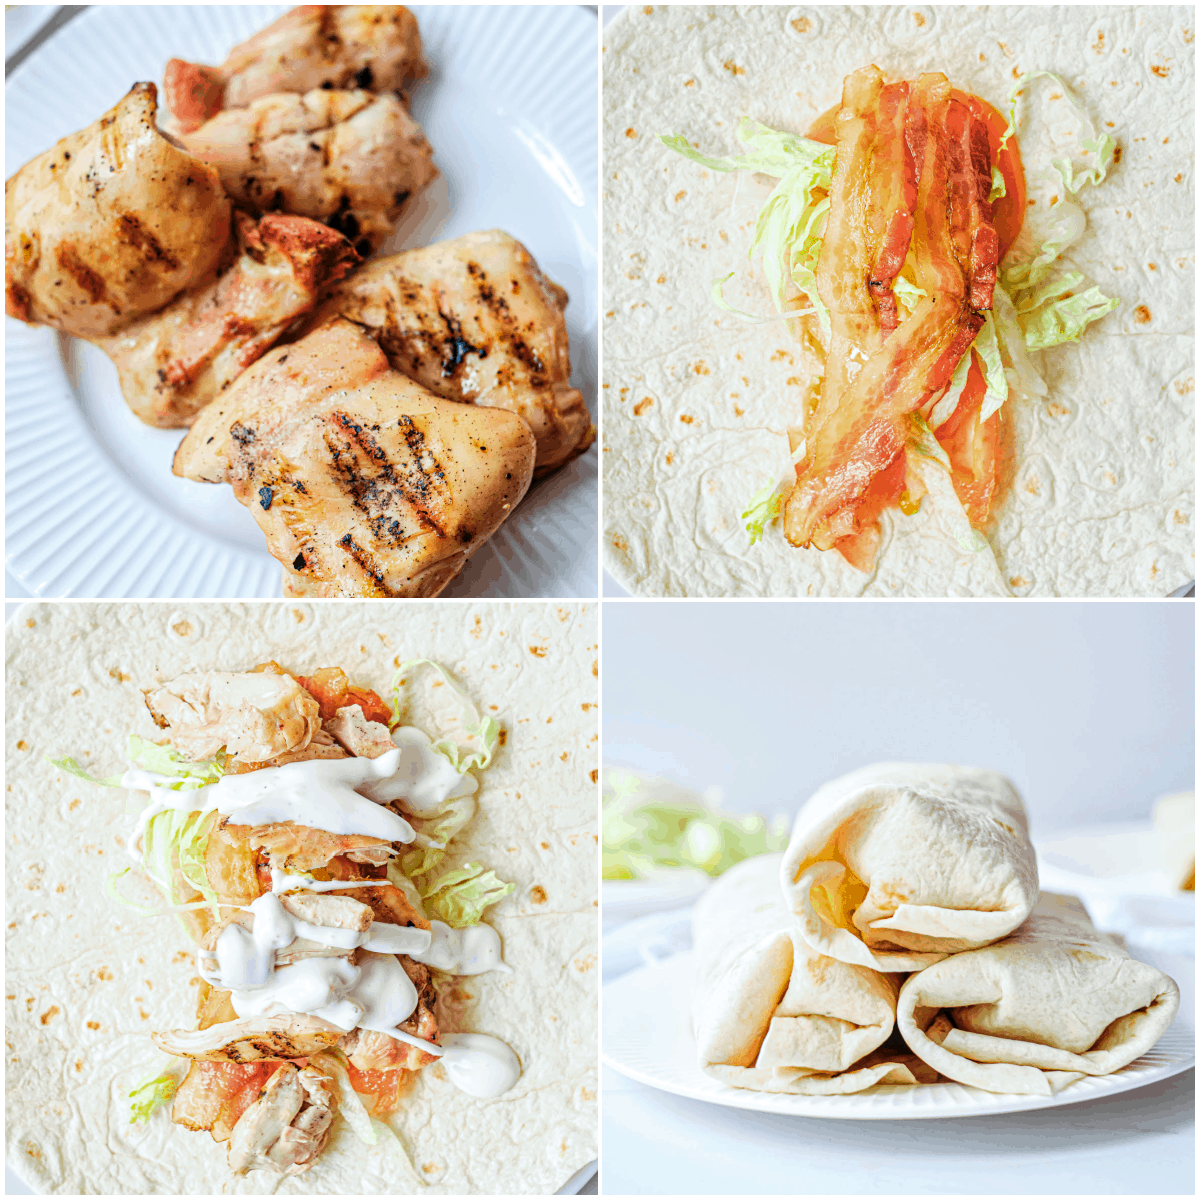 image collage showing the steps for making chicken wrap with bacon and ranch dressing